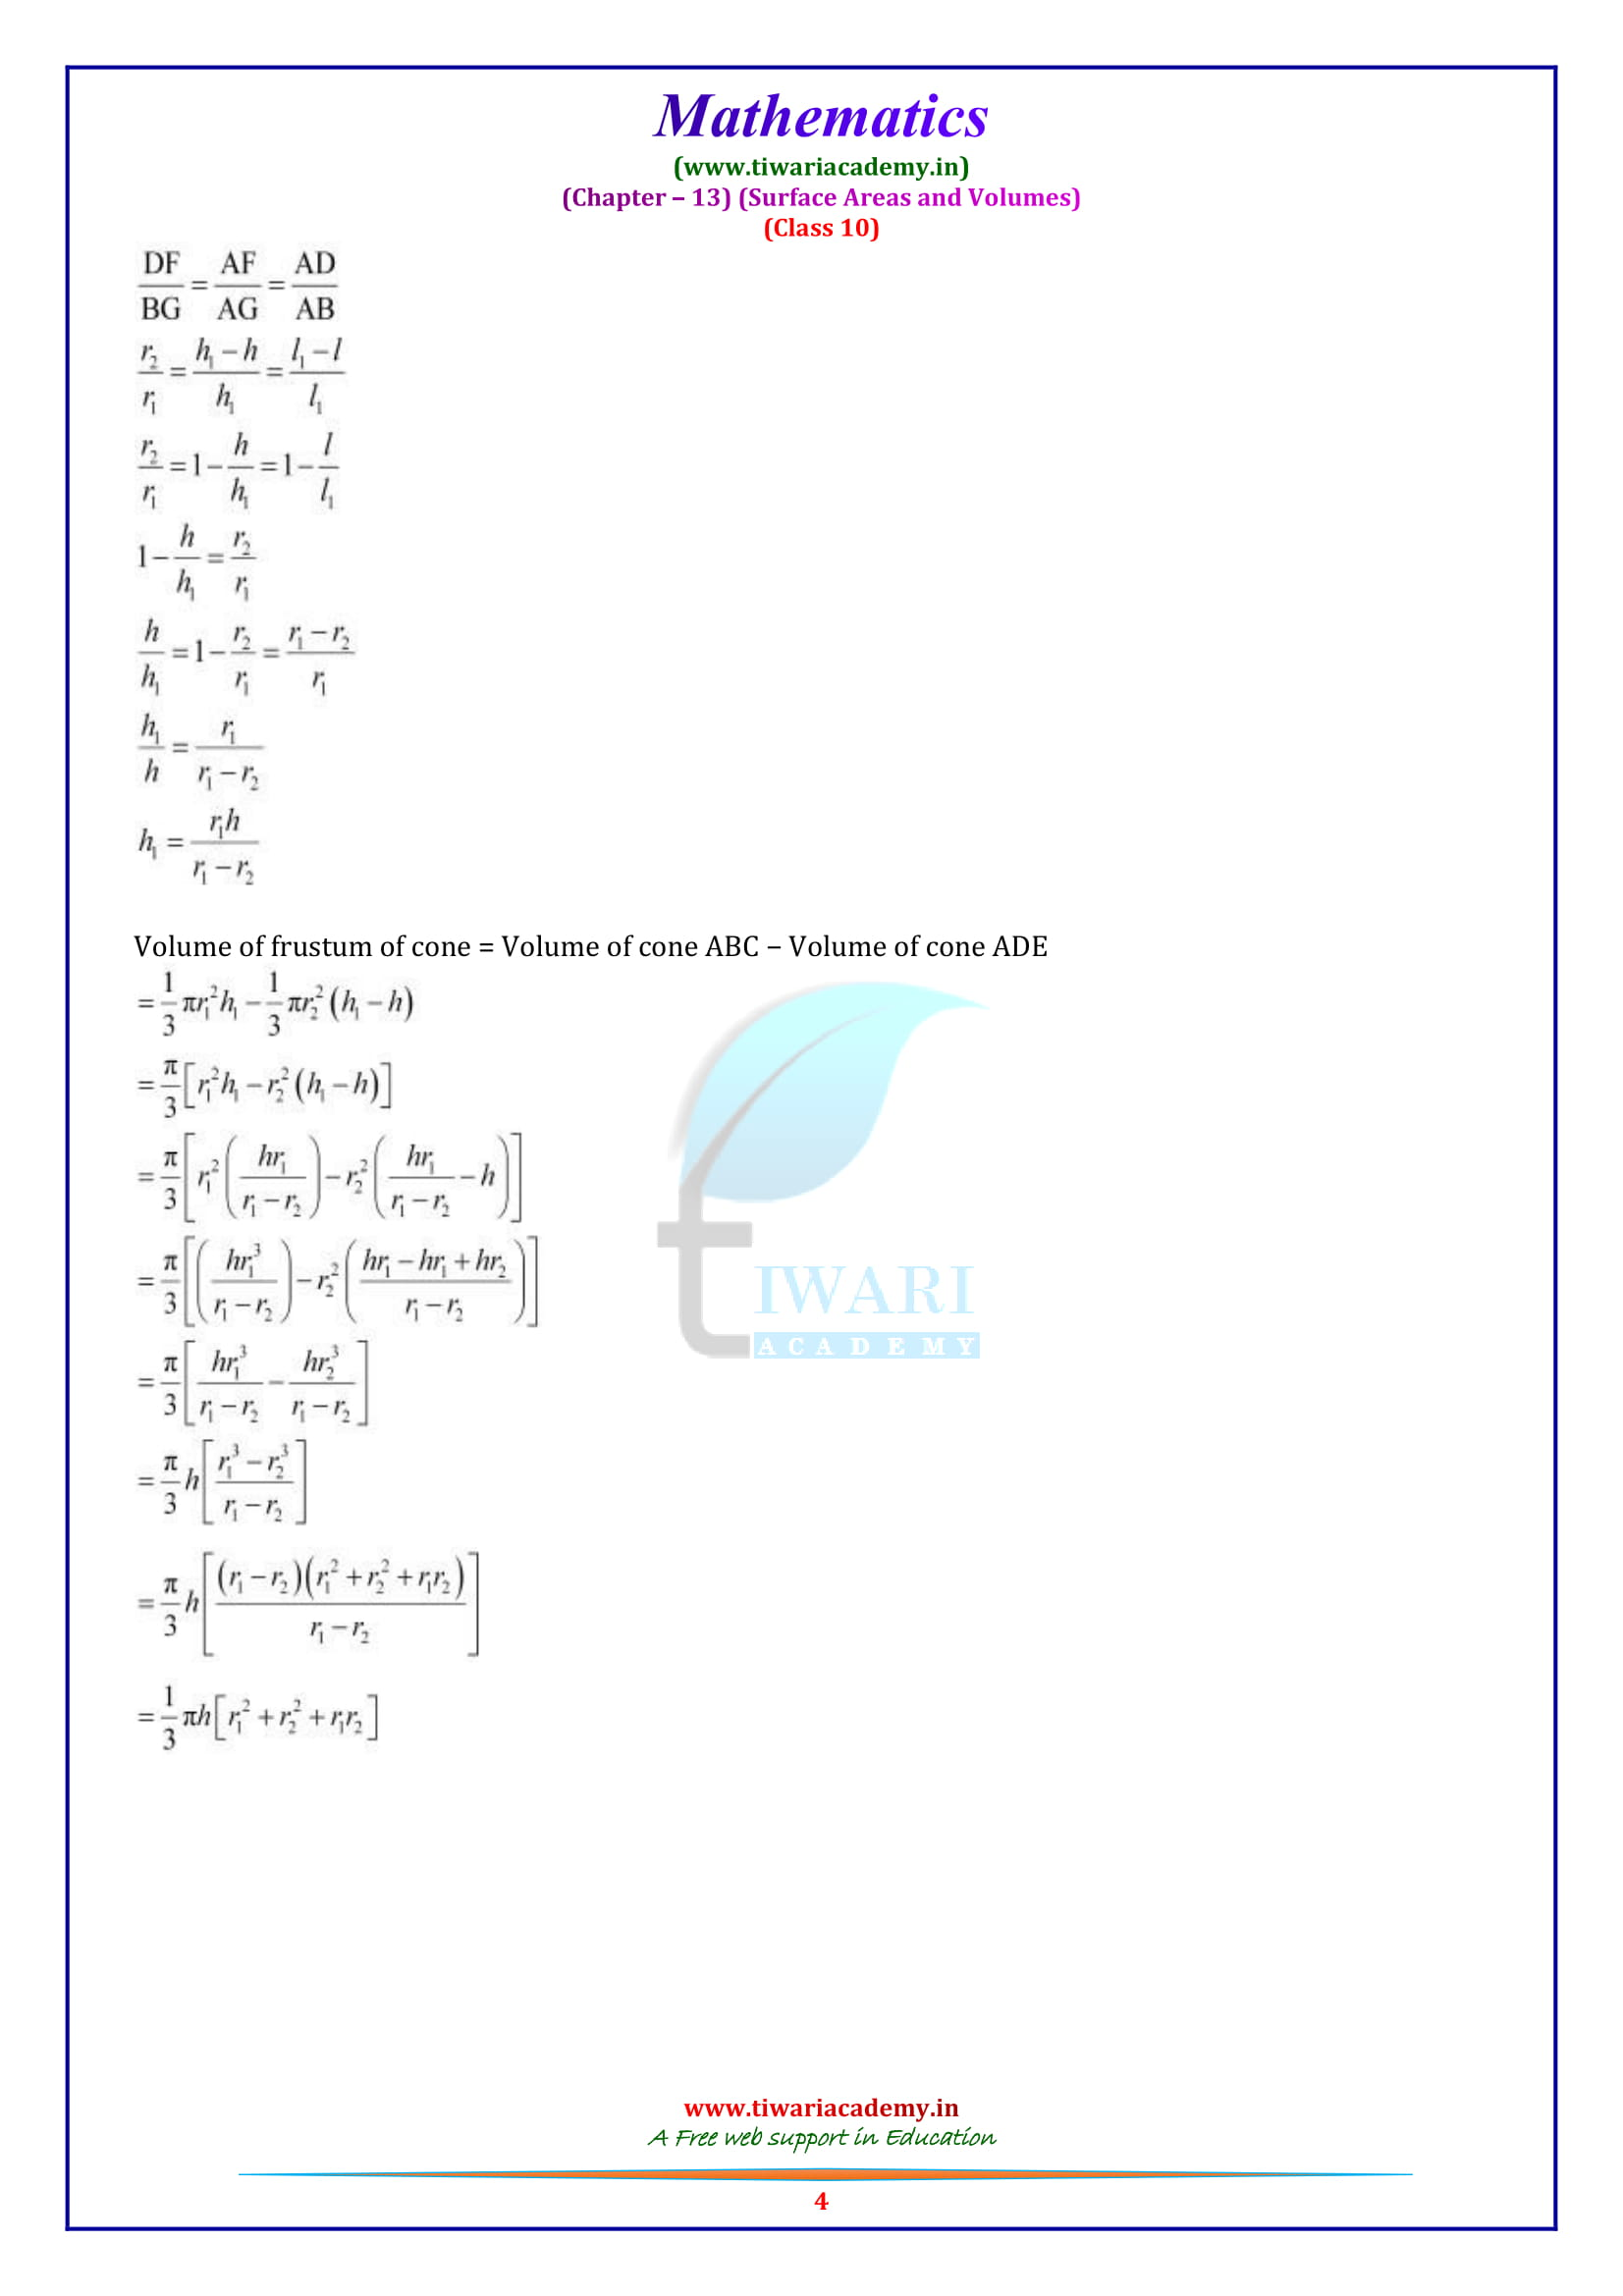 10 Maths exercise 13.5 in pdf free to download